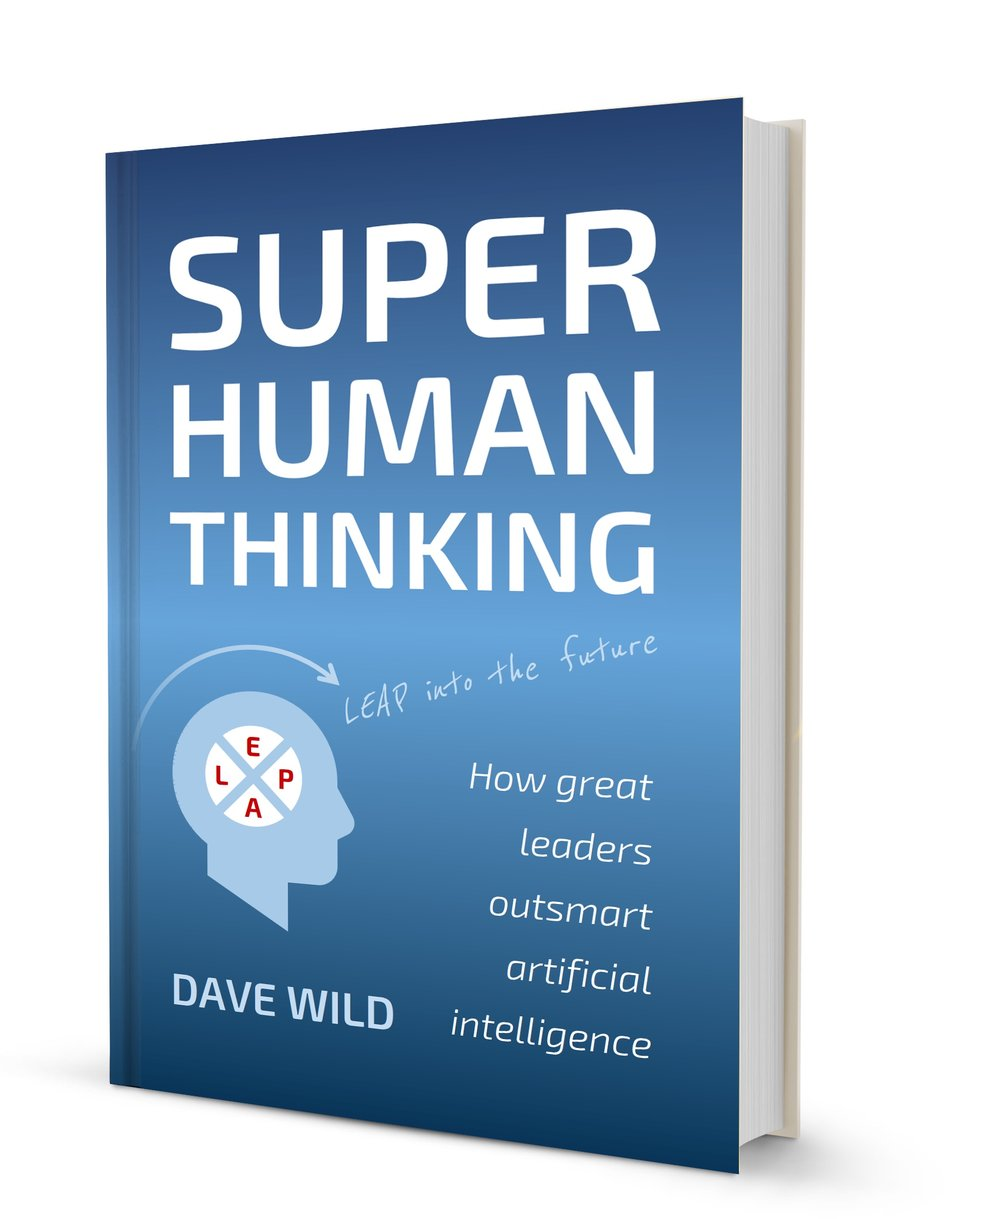 superhuman-intelligence-1702.jpg